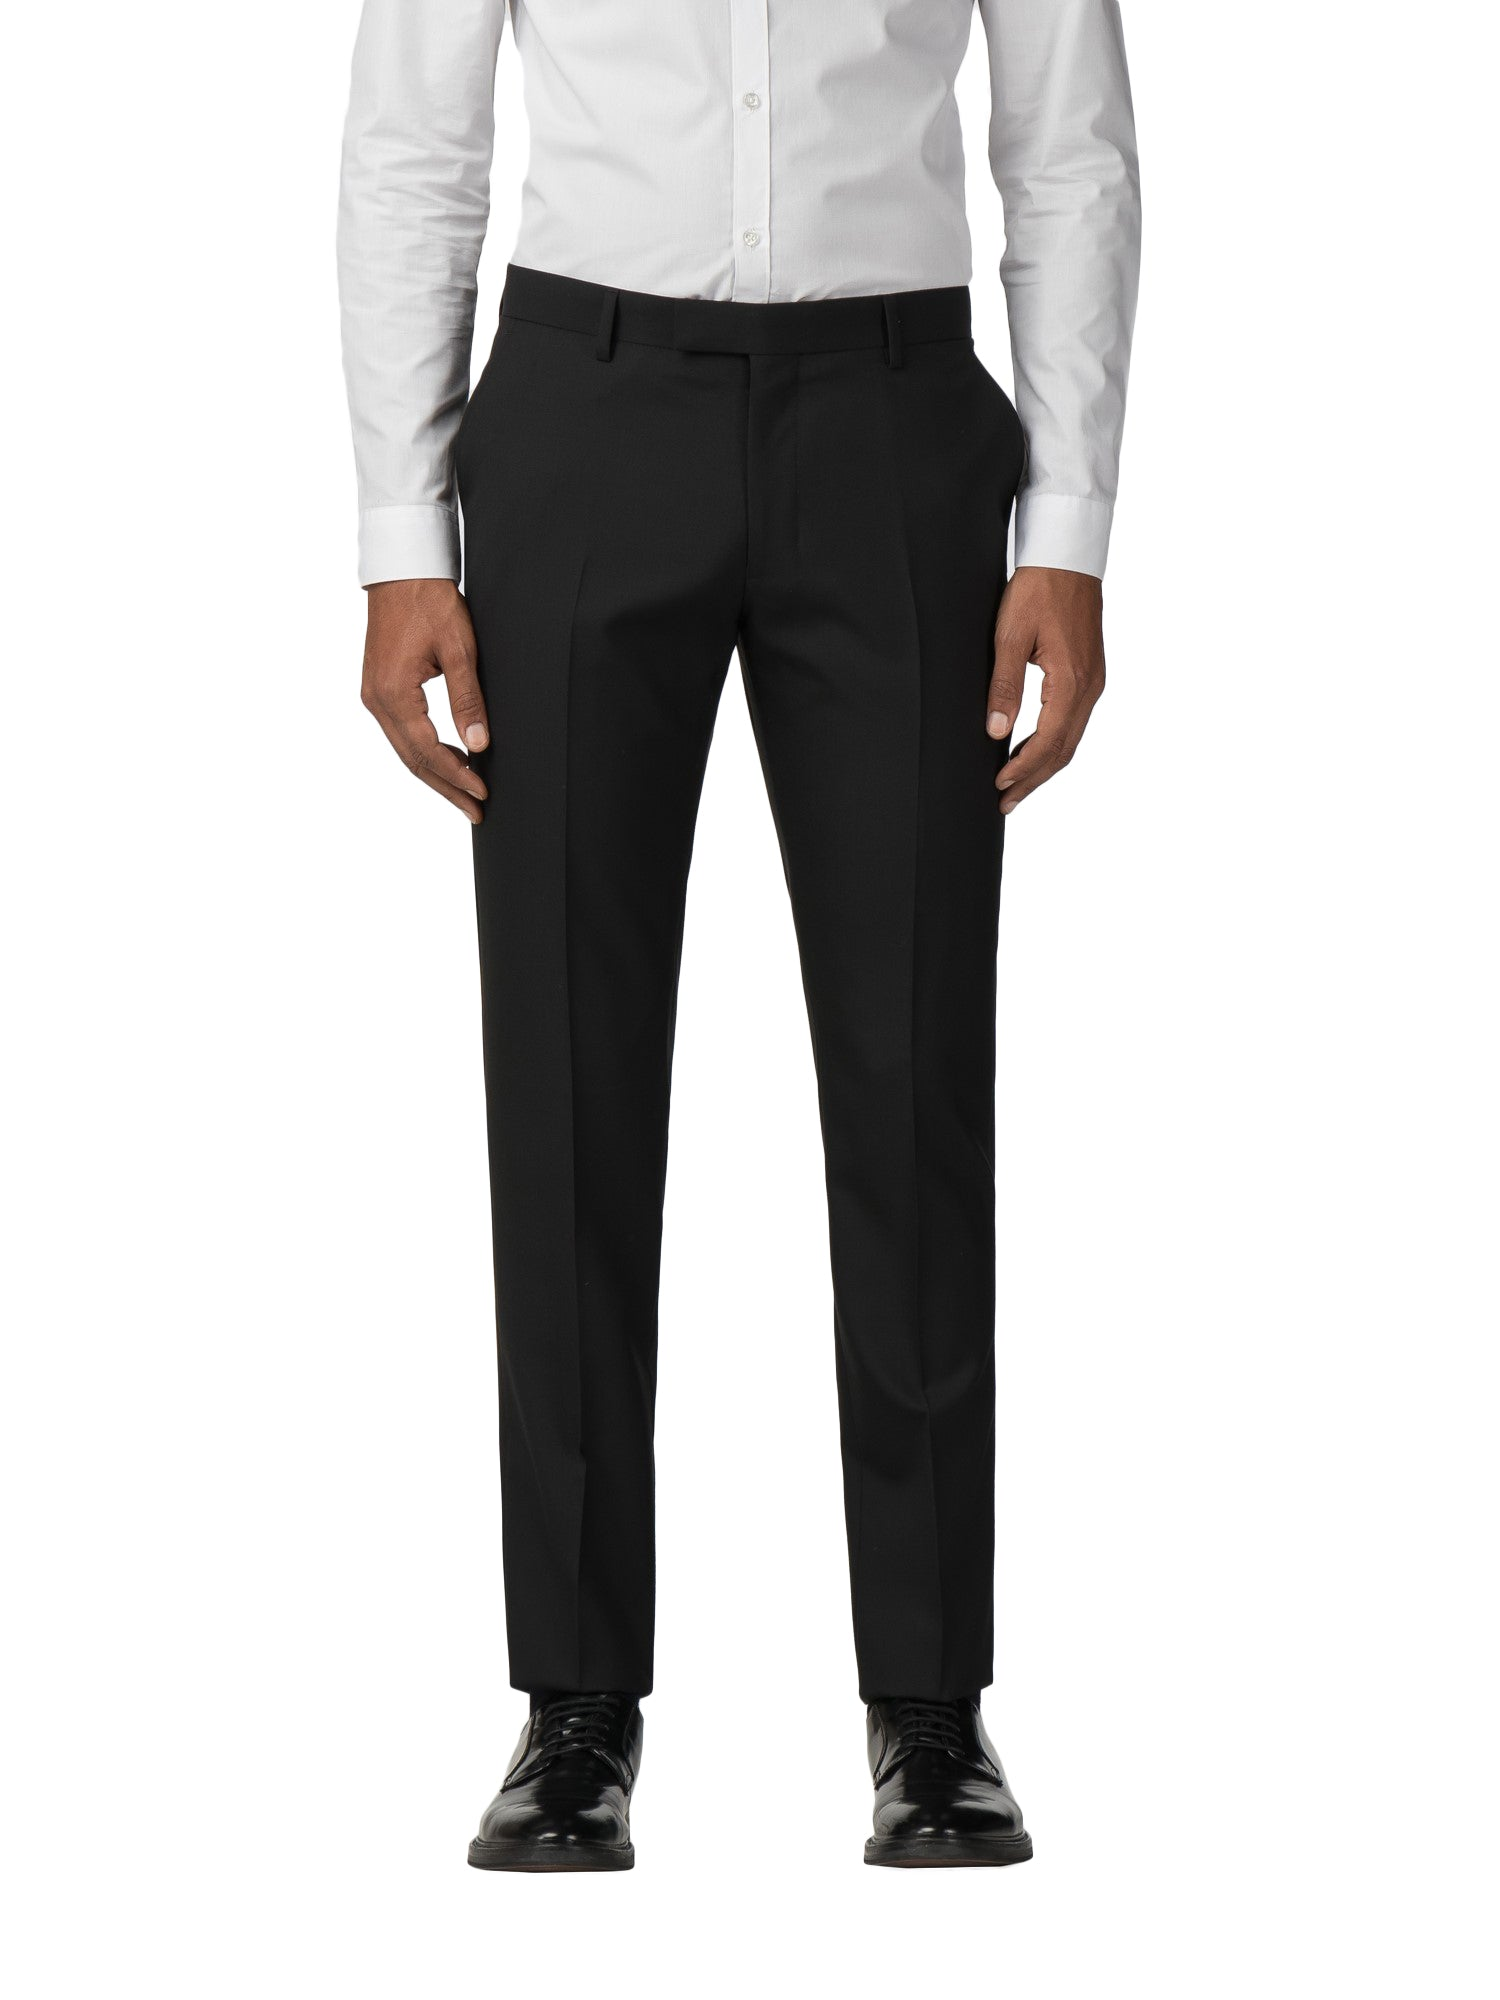 Ben Sherman Mens Black Dresswear Suit Trouser in 36S to 36S